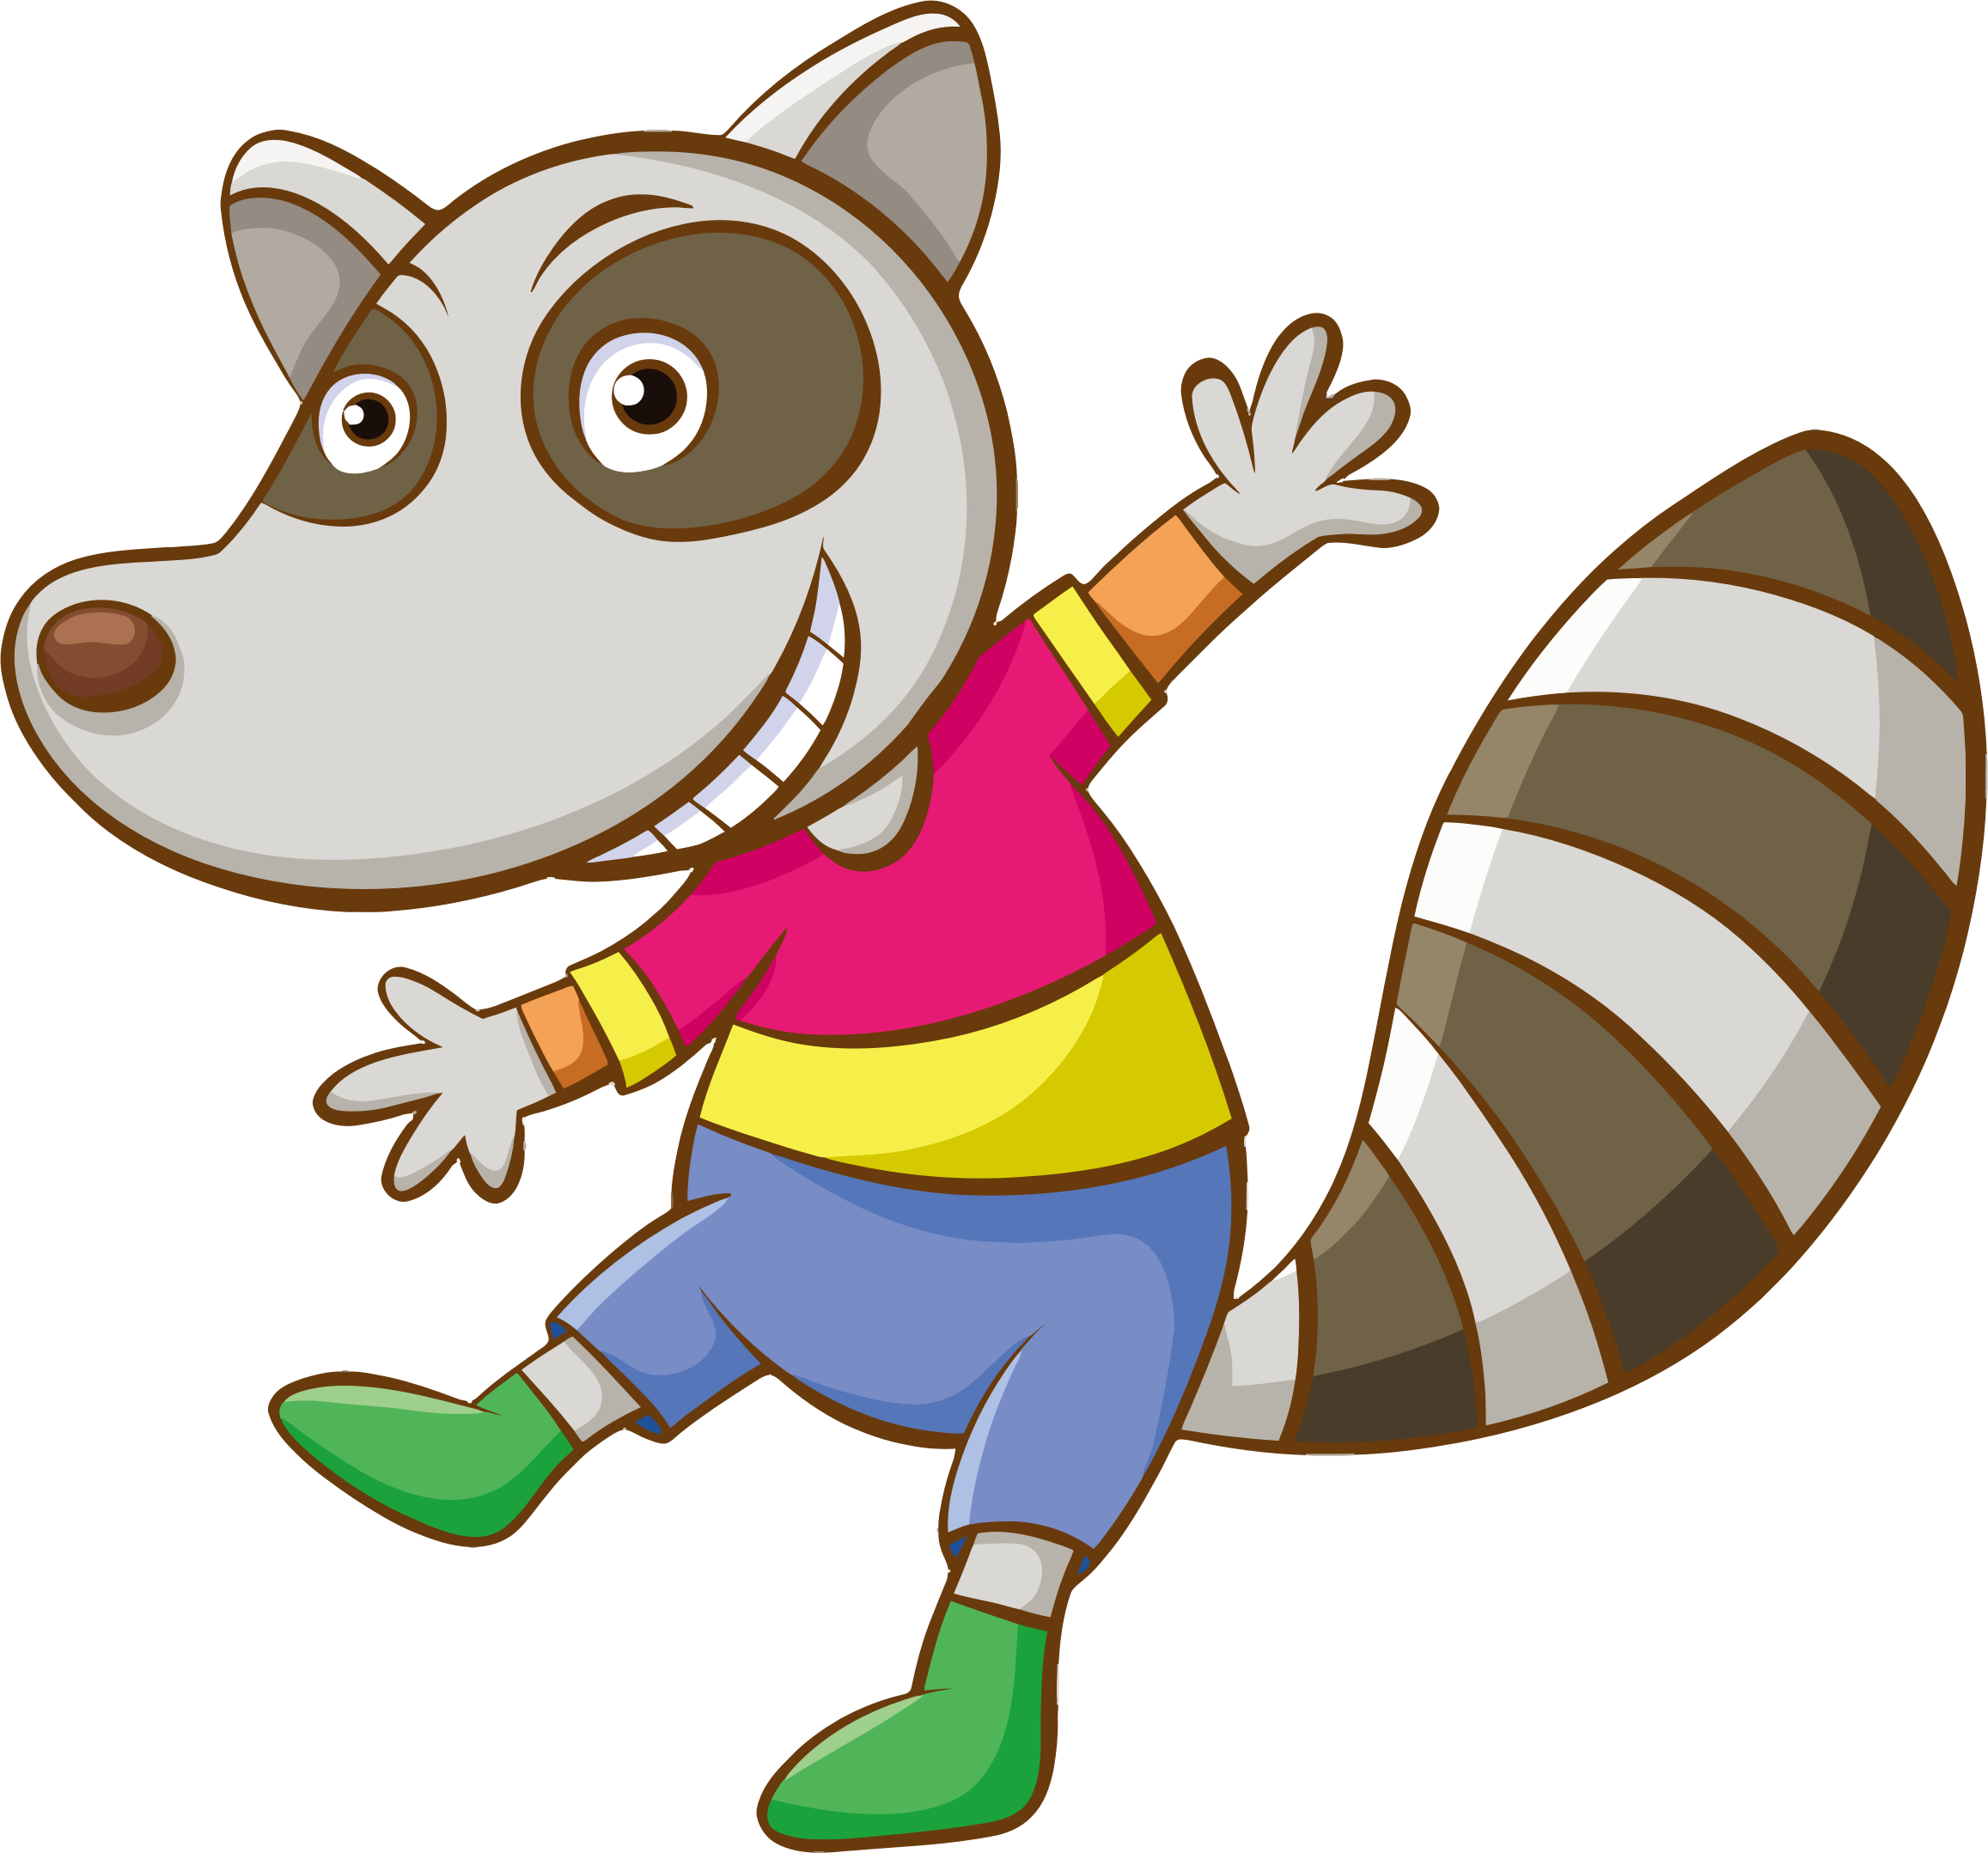 Cartoon Raccoon by GDJ